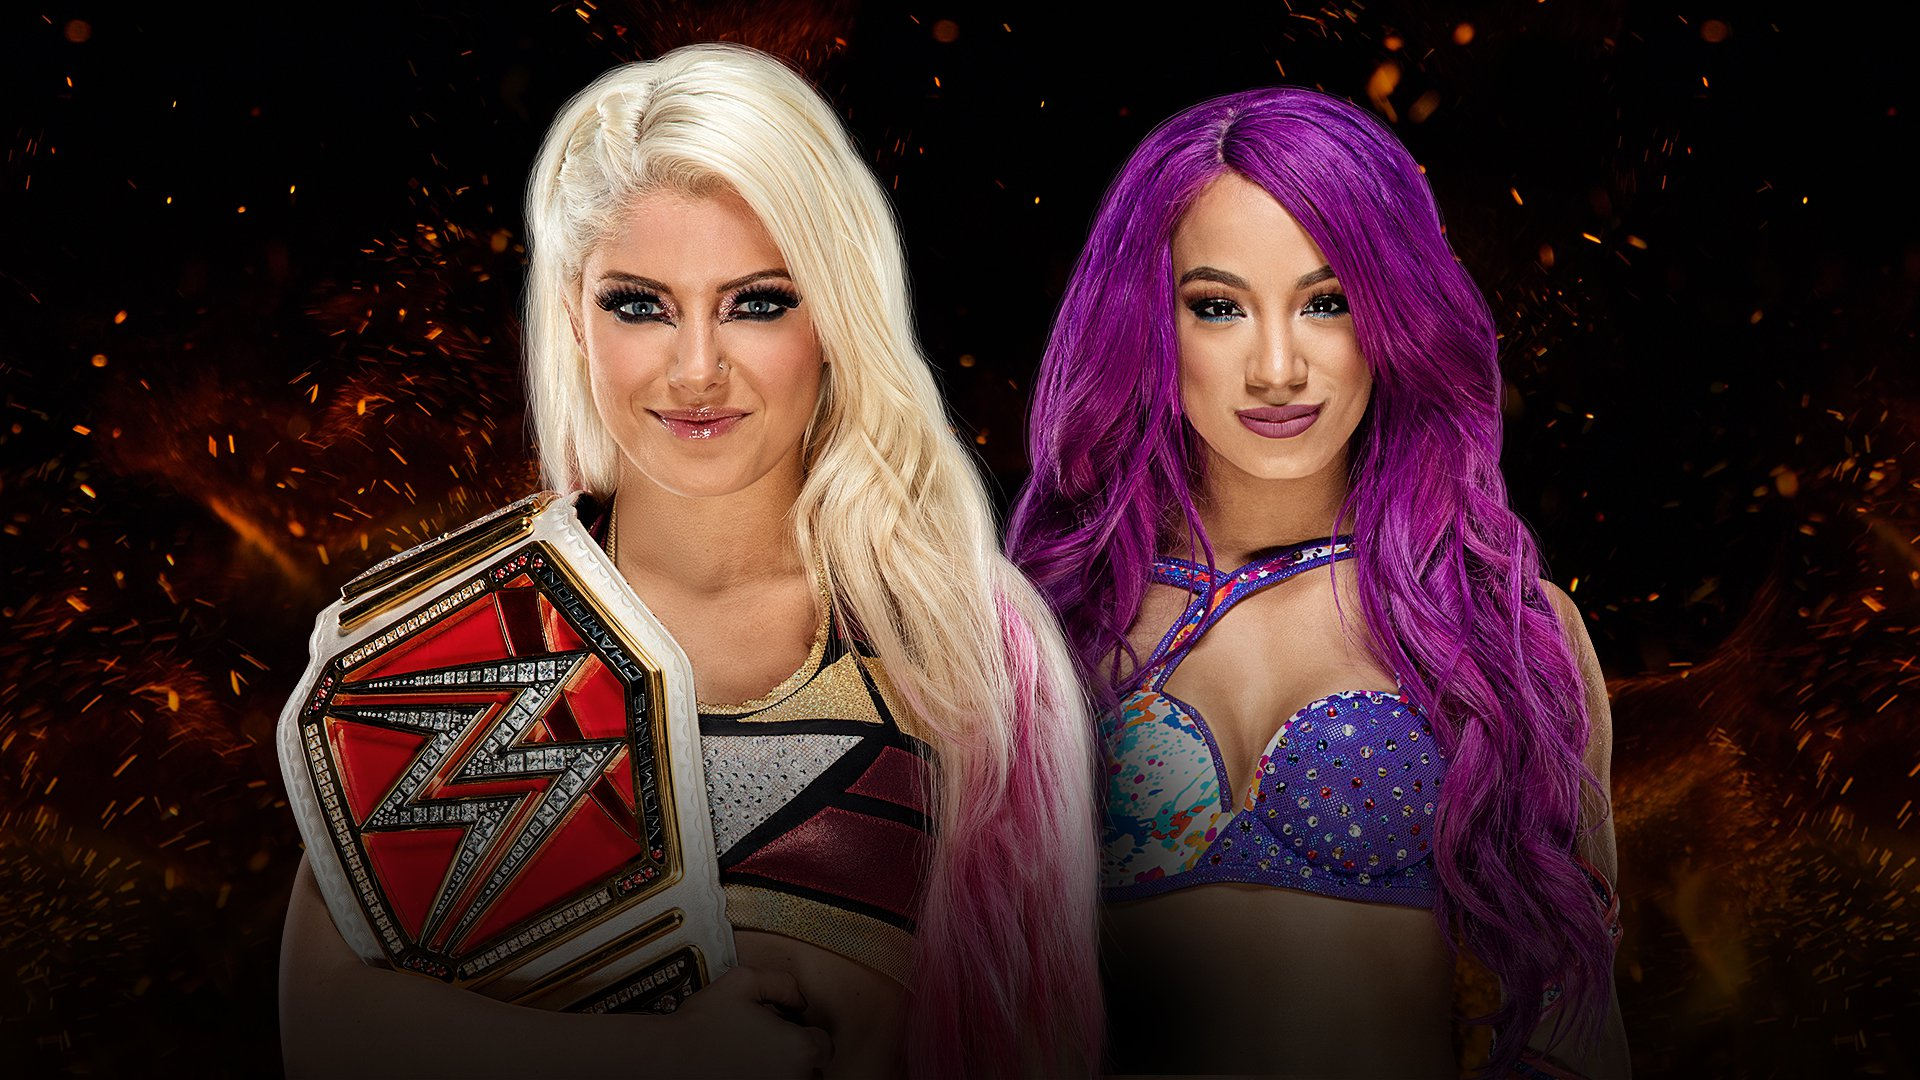 WWE Great Balls of Fire 2017: Alexa Bliss vs. Sasha Banks